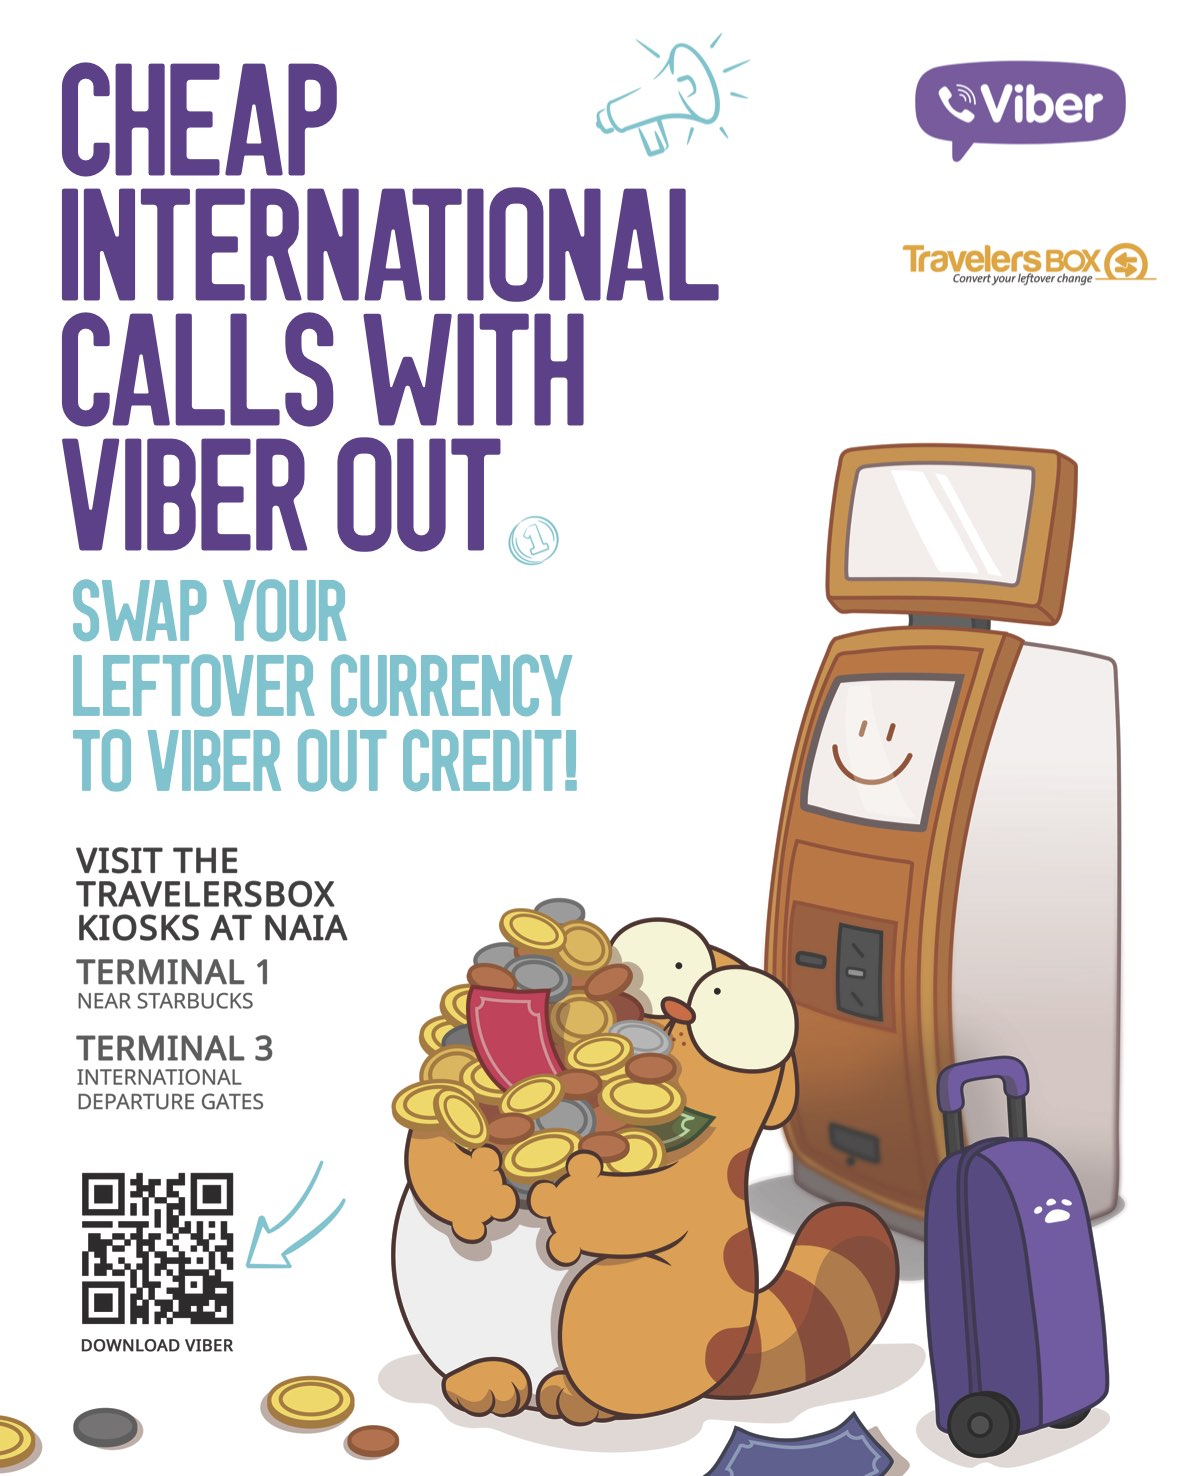 Viber and TravelersBox